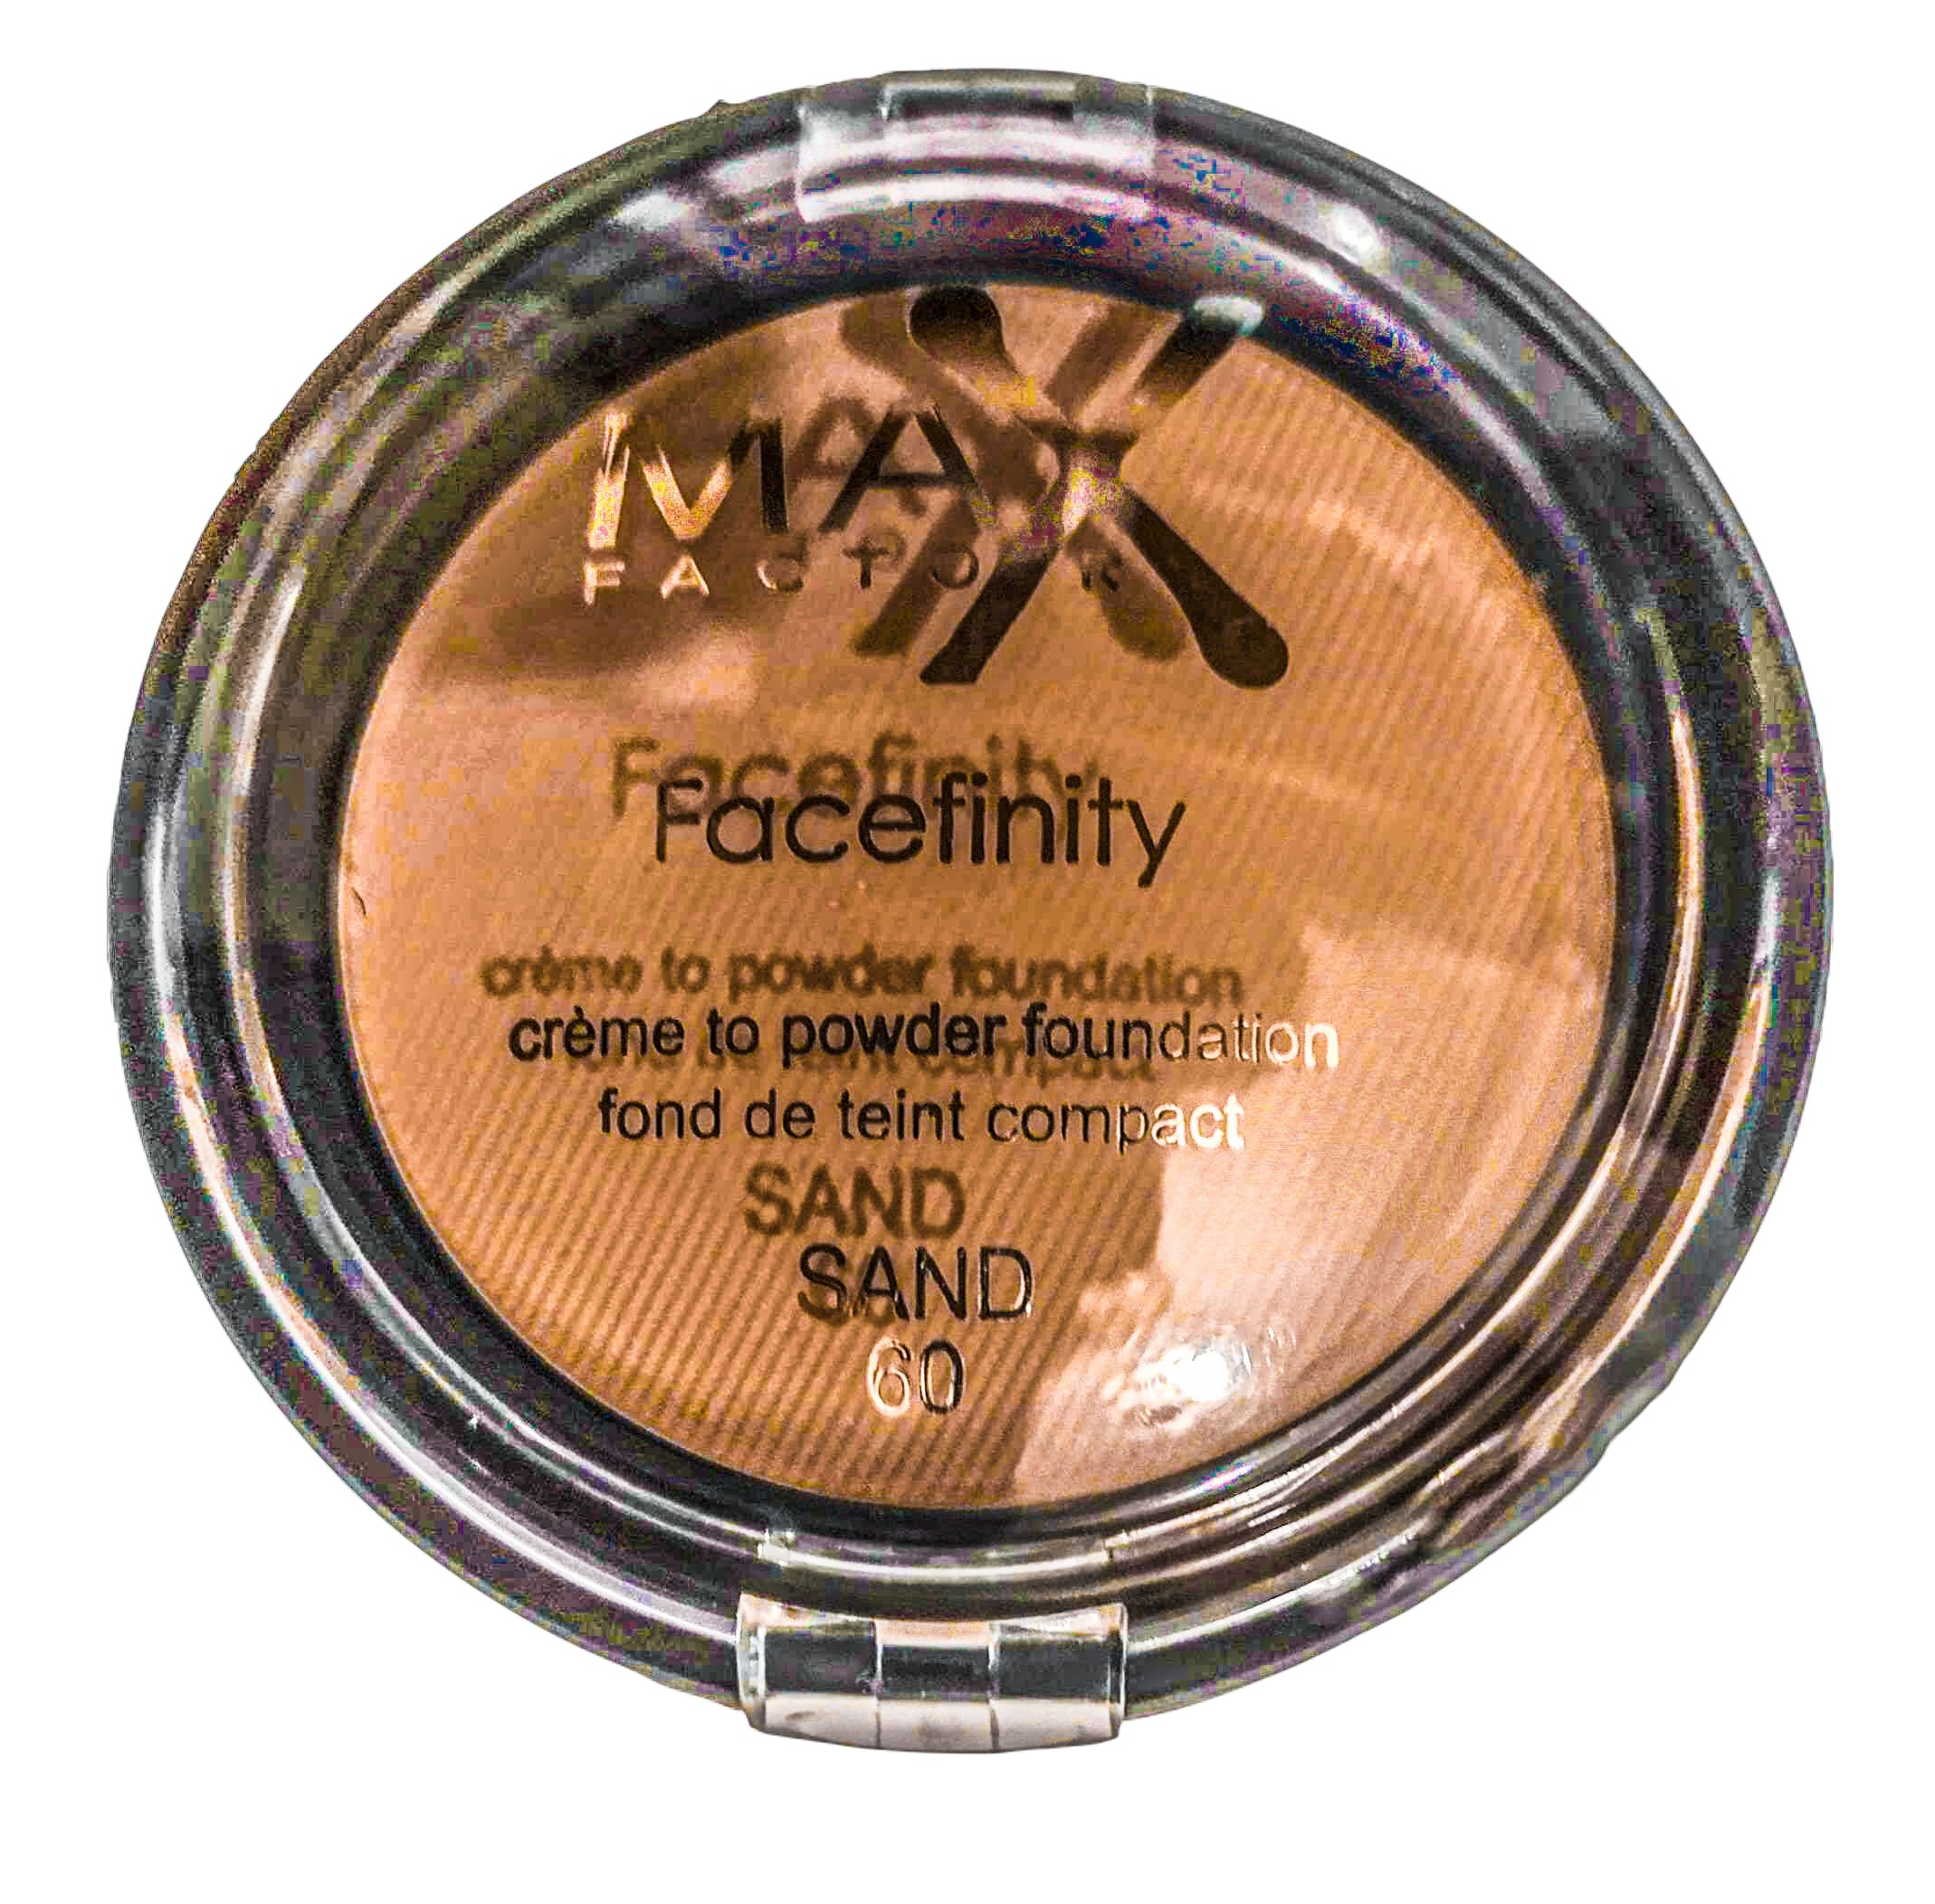 MAX FACTOR FACEFINITY SAND N.60 16G ANNO 2020